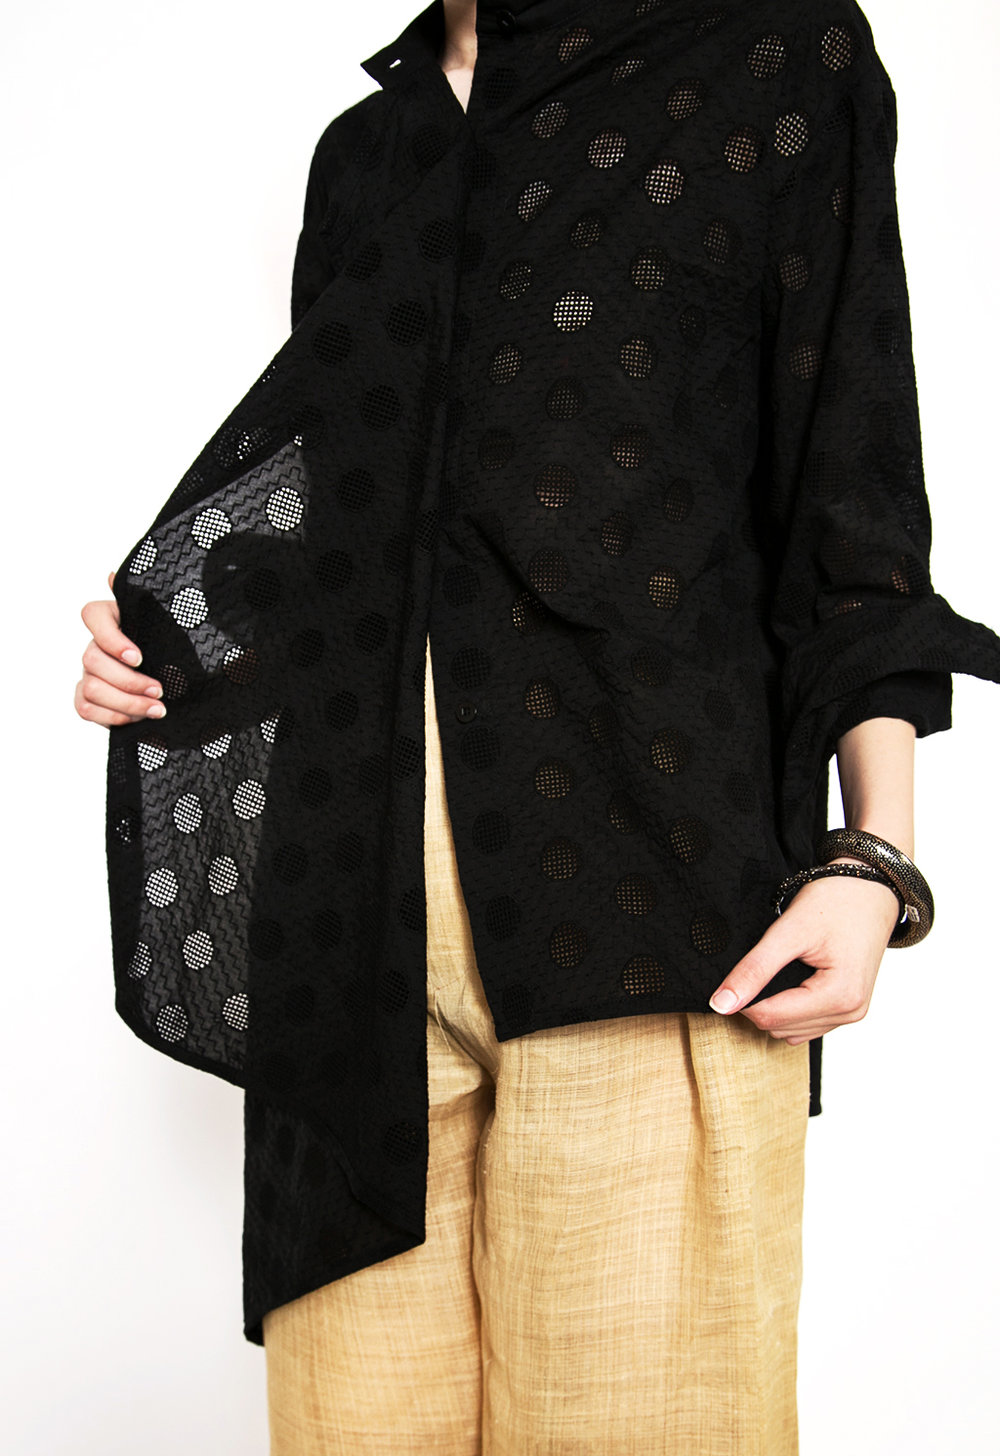 Our Tilt Blouse in Nuno Black Grill Plates